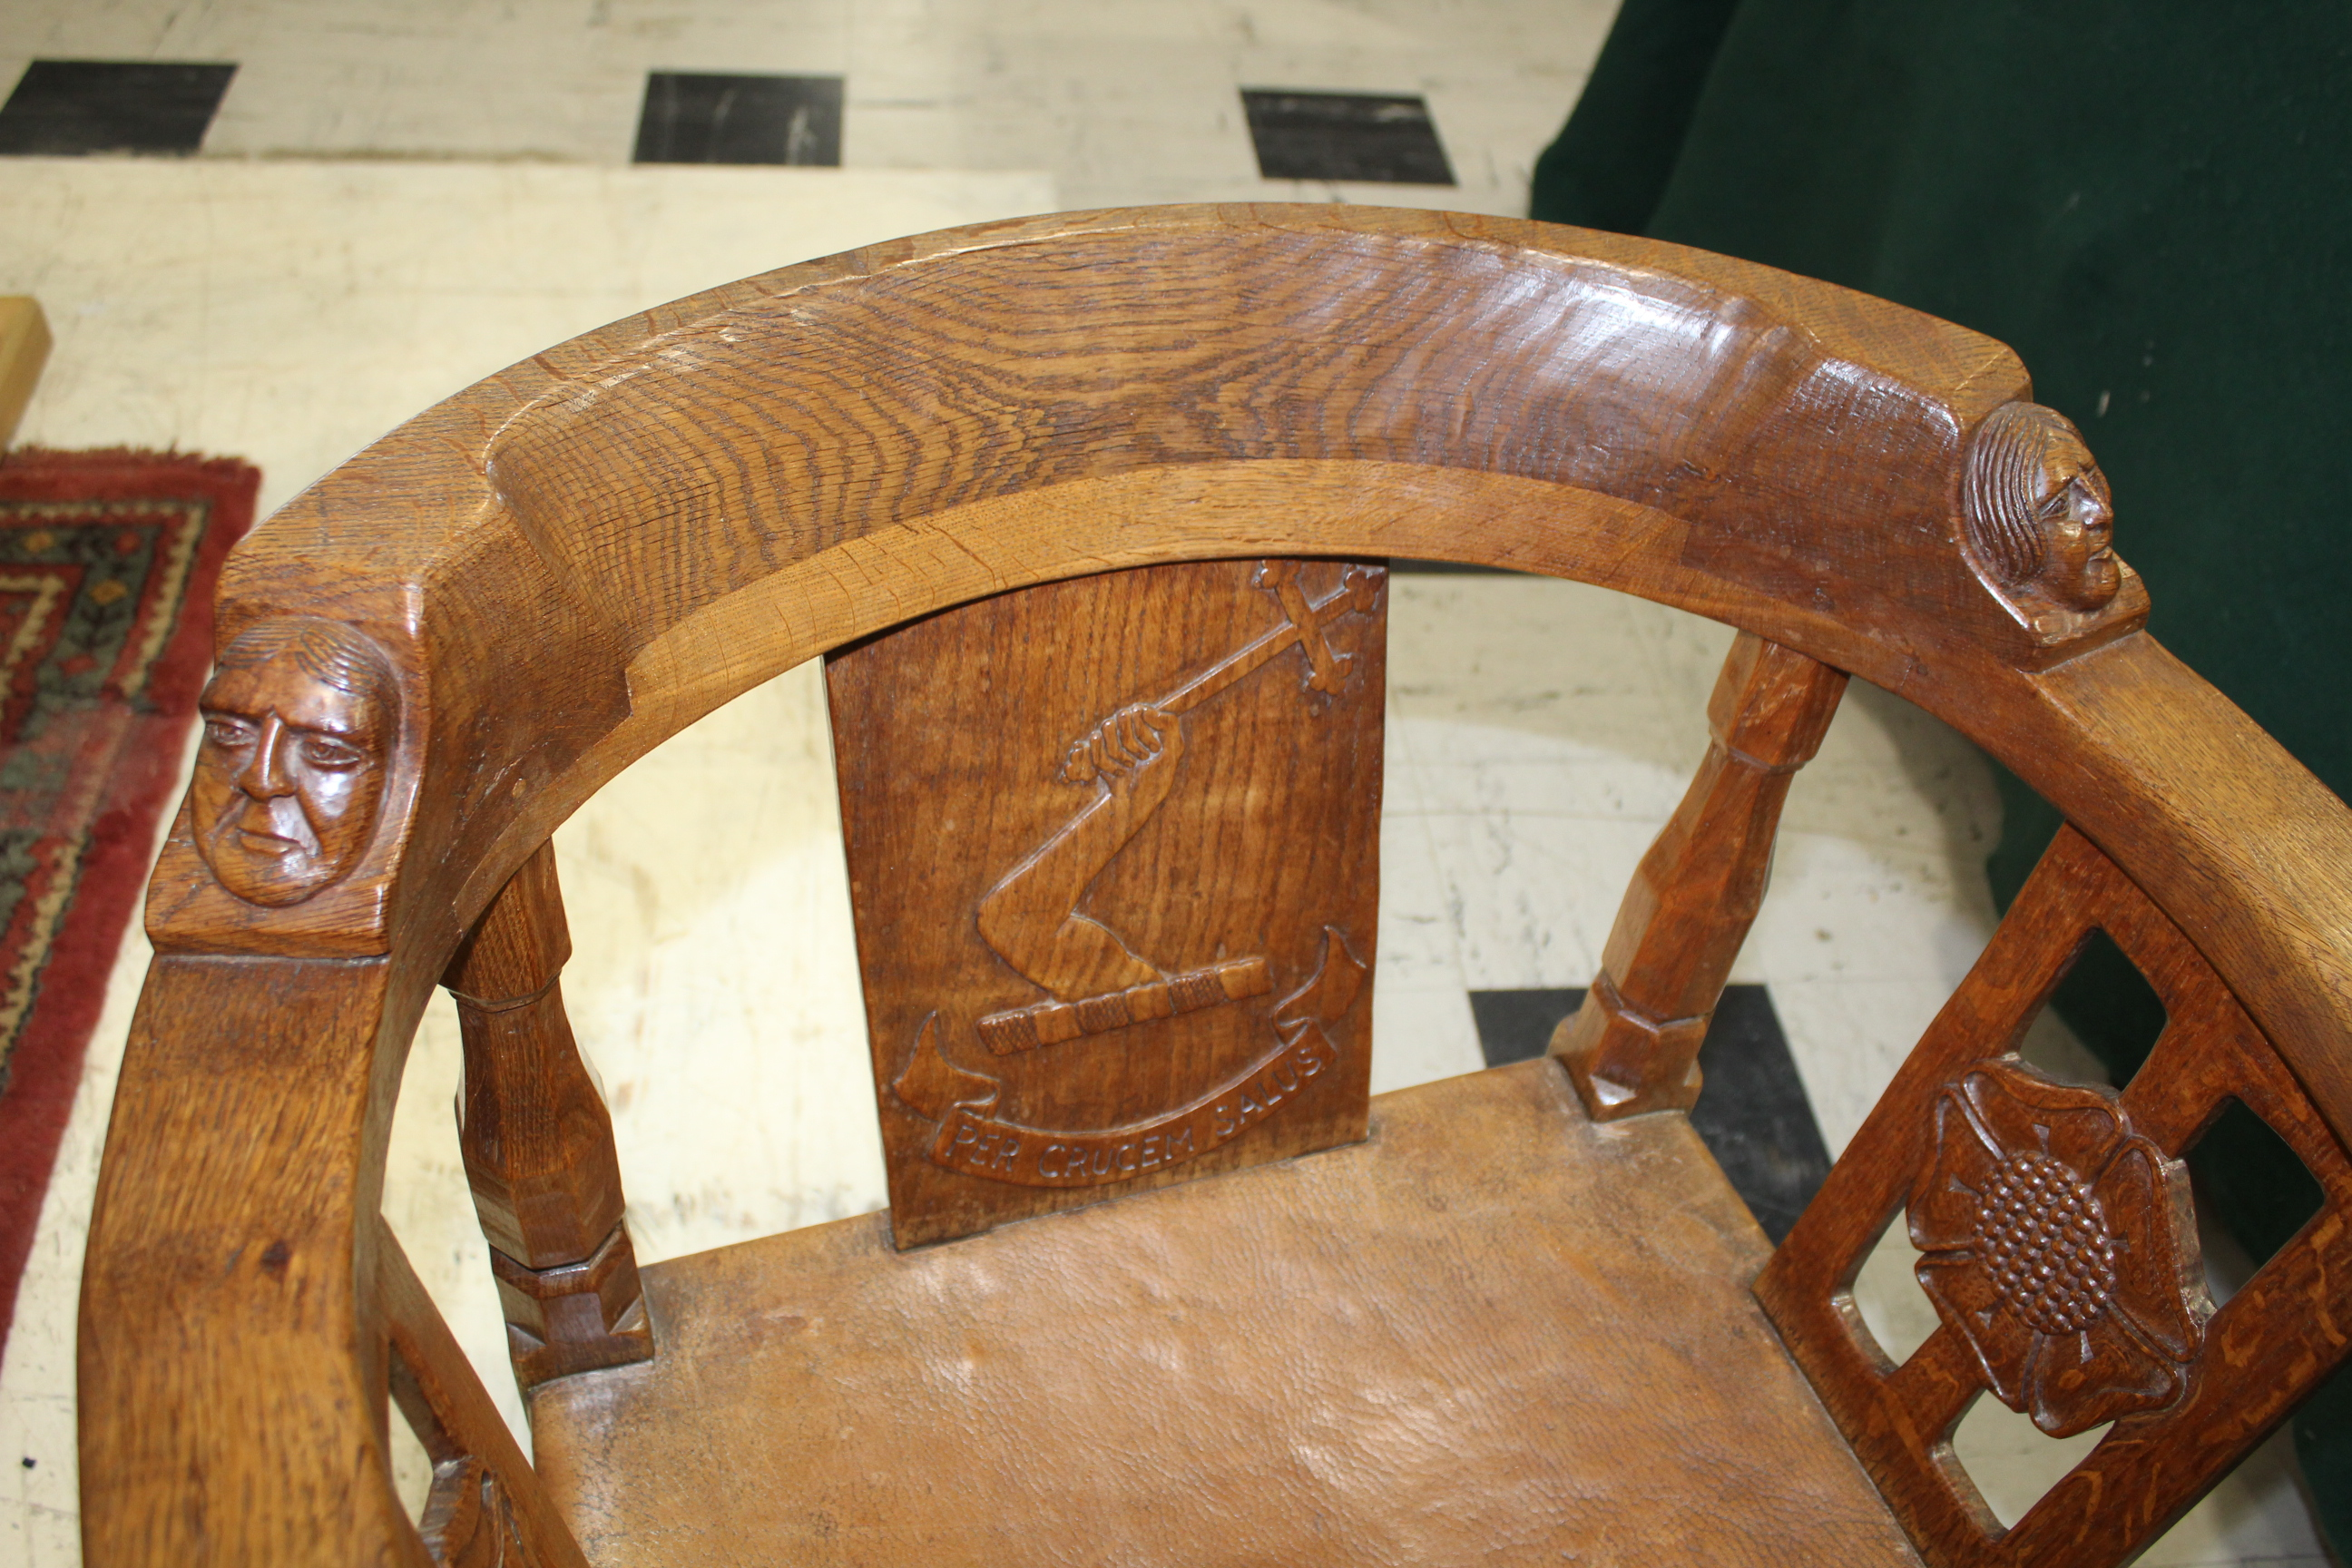 ROBERT THOMPSON OF KILBURN - MOUSEMAN MONKS CHAIR a circa 1920s/1930s oak Monk's armchair with a - Image 19 of 27